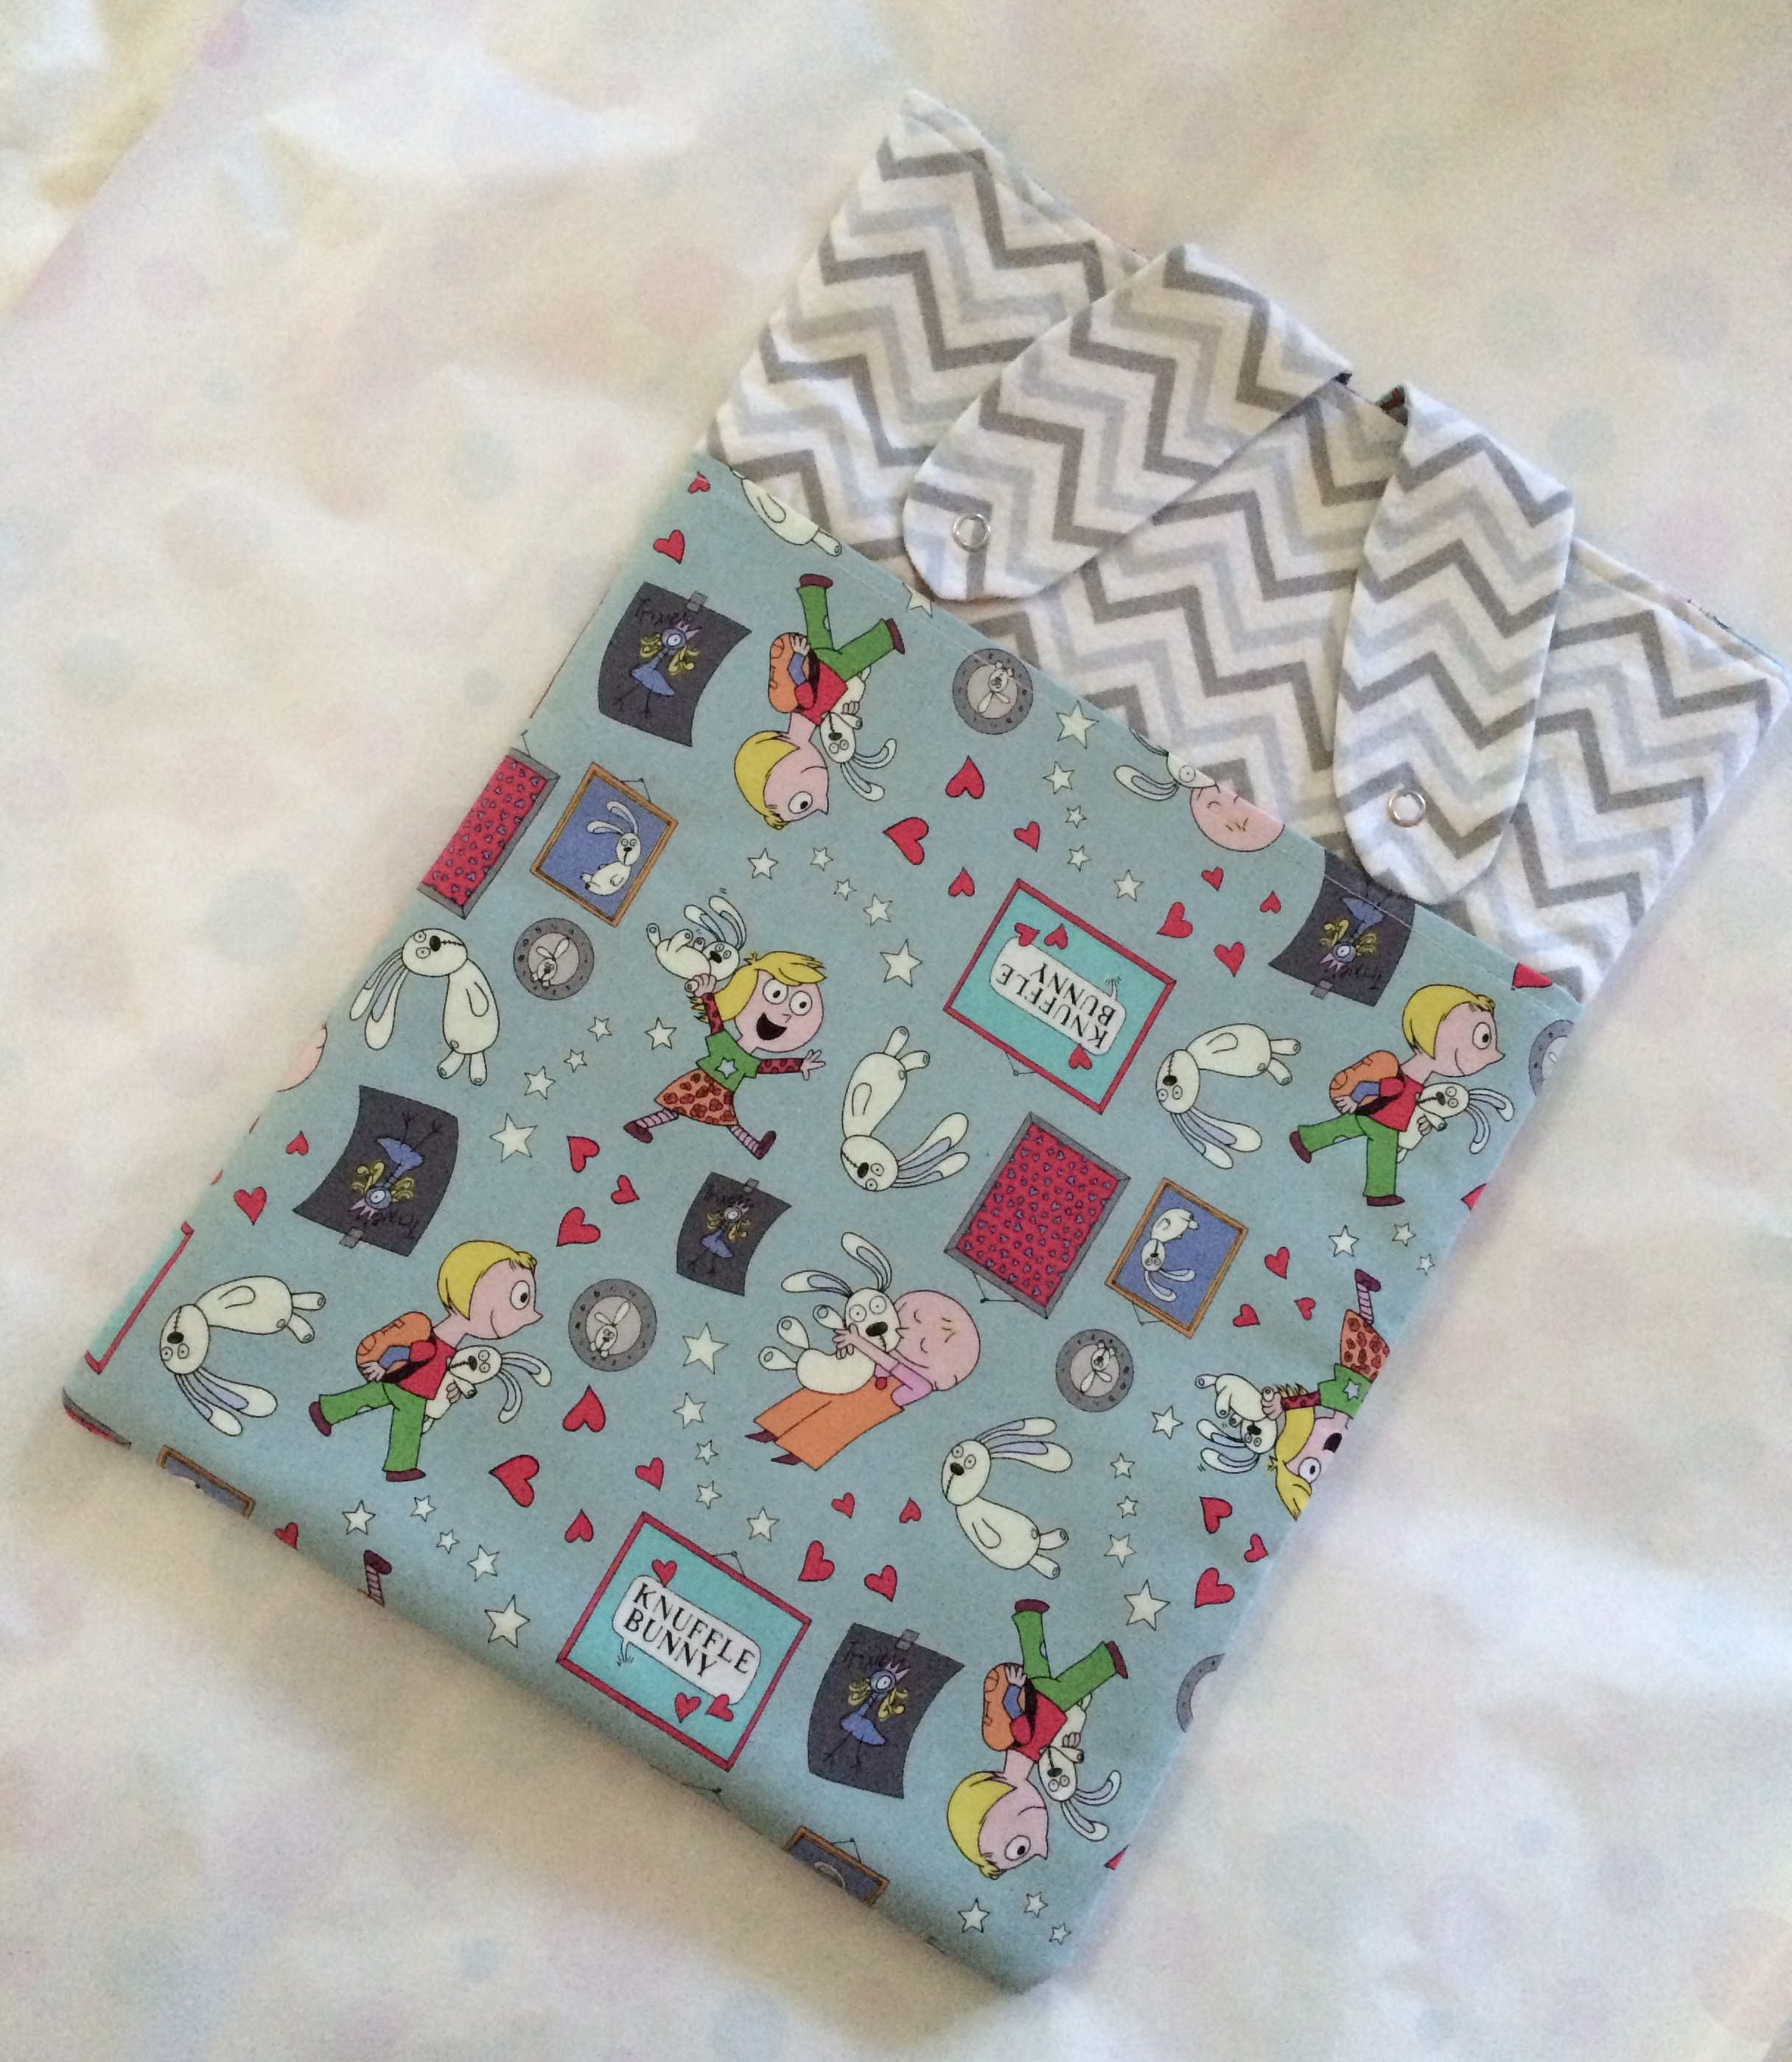 Handmade Knuffle Bunny Laptop sleeve (ears down), photo by Heidi M. Kim